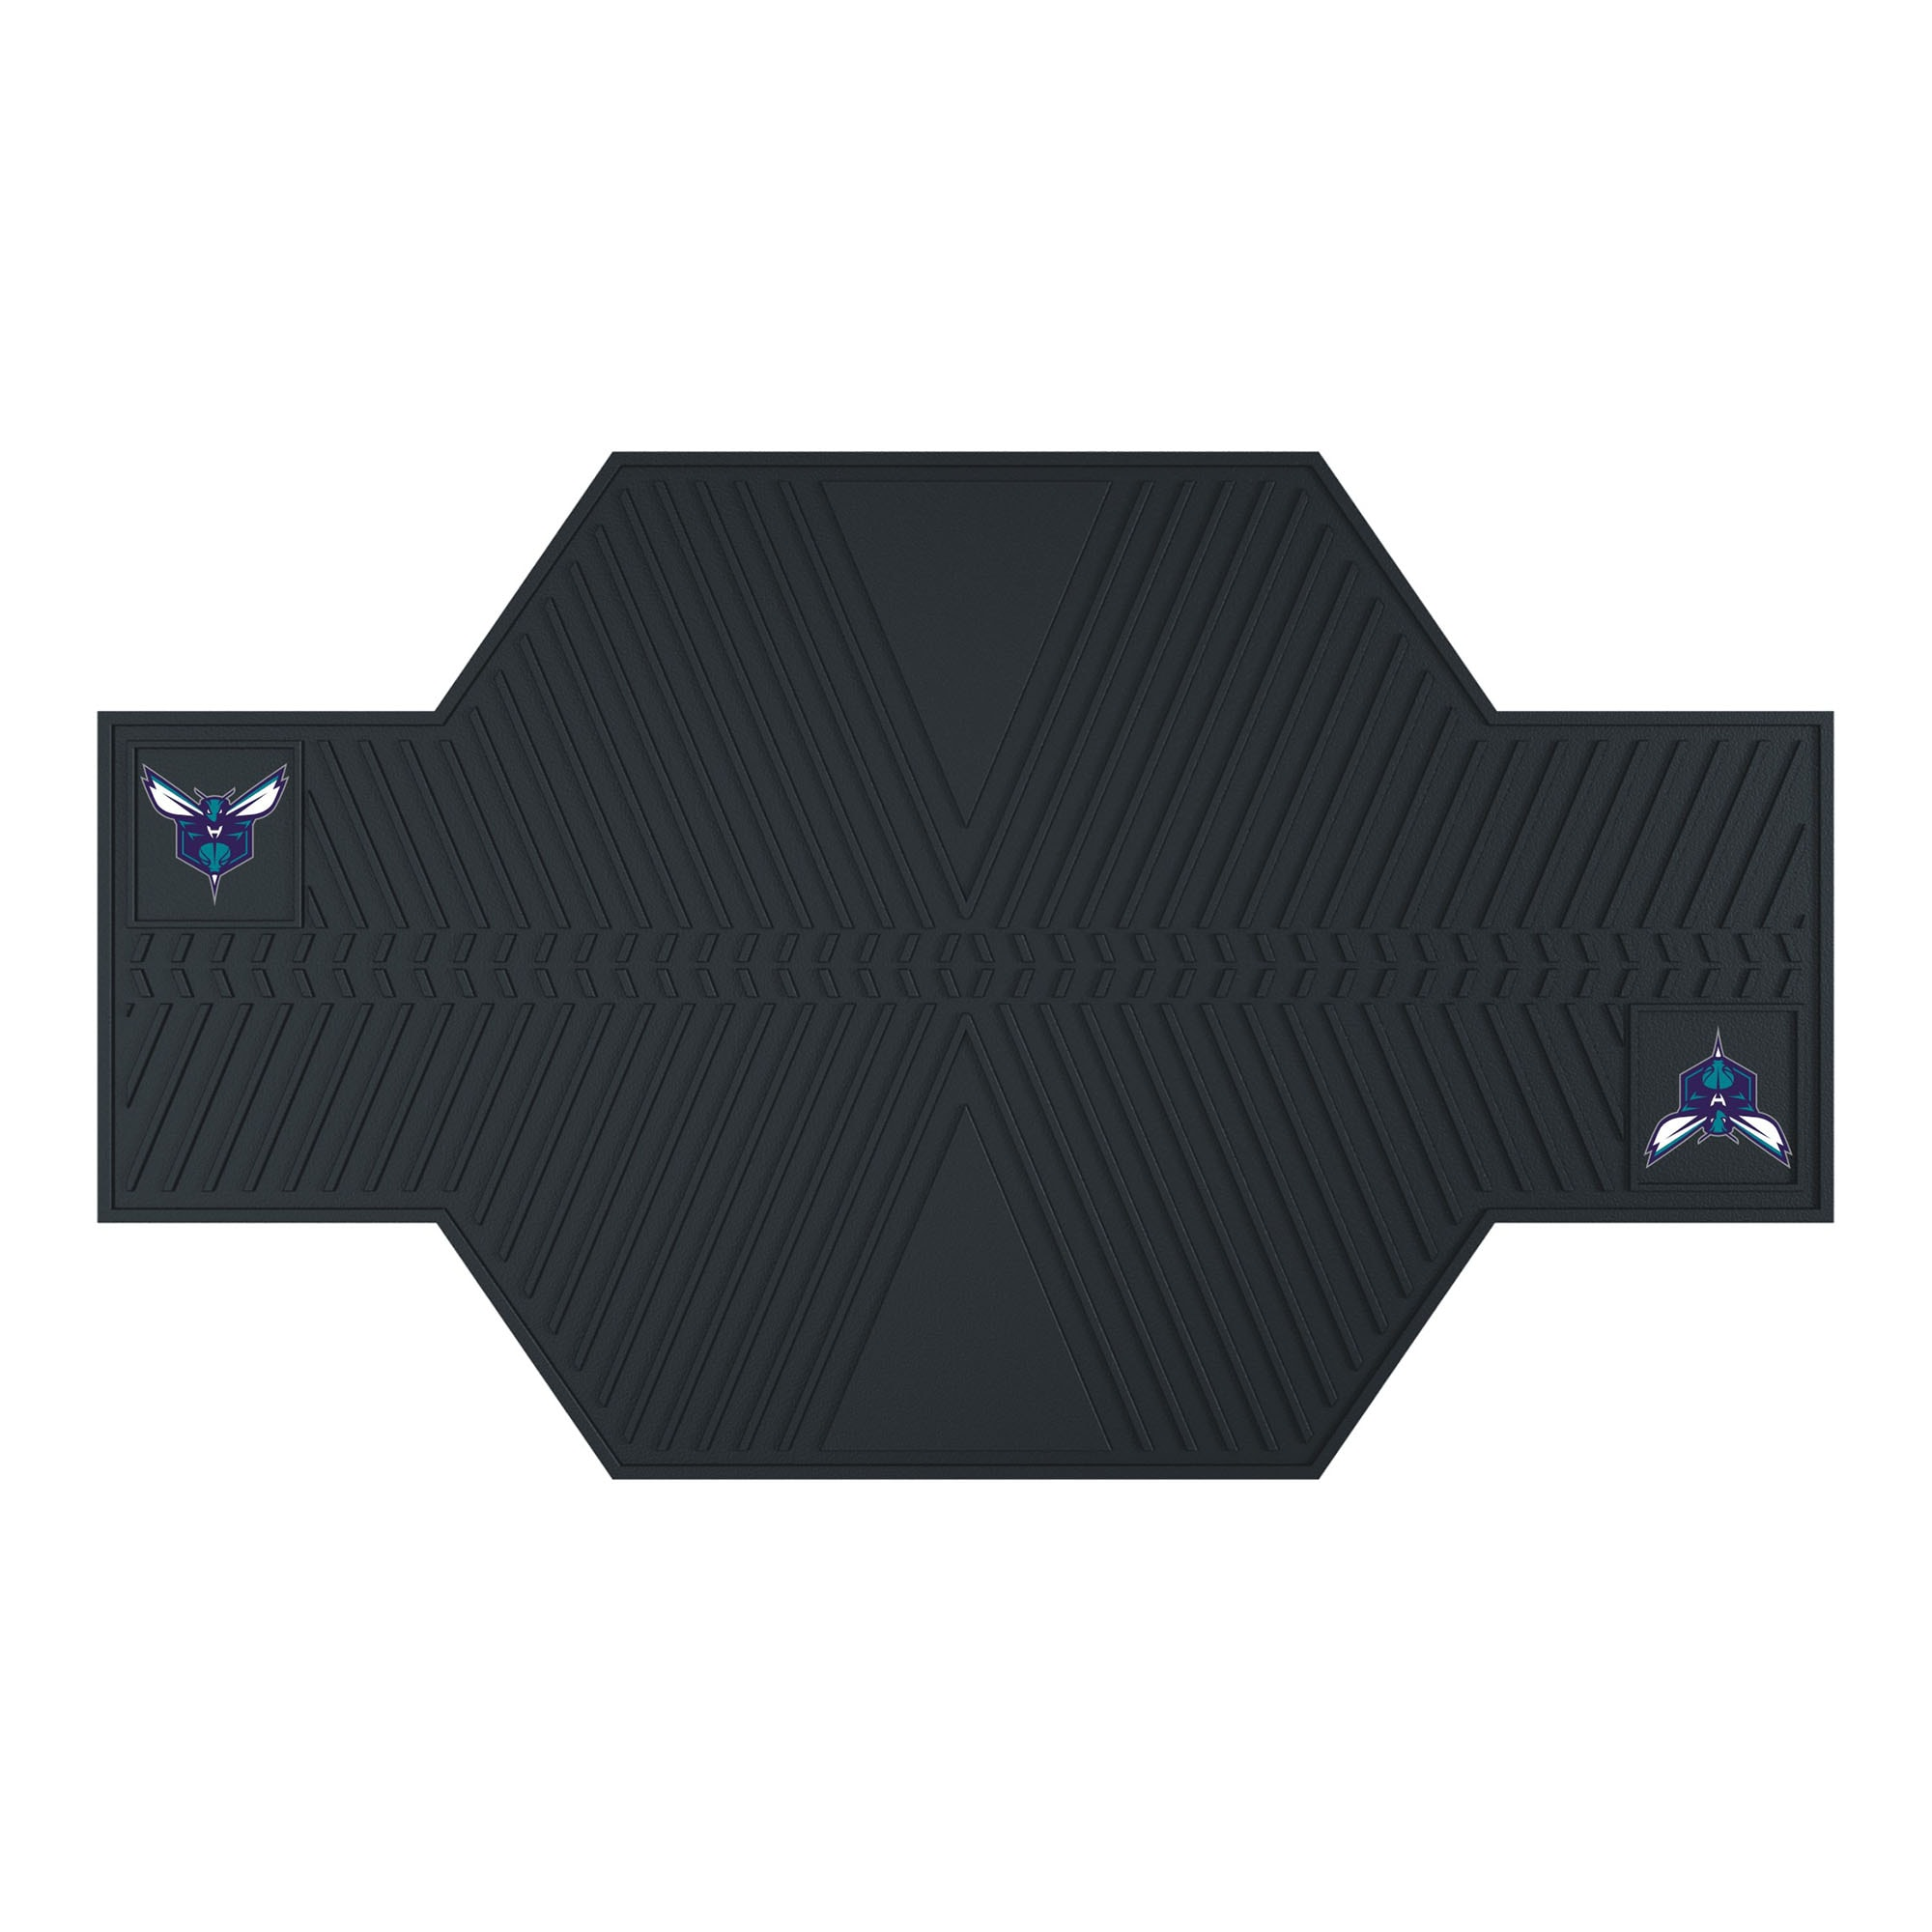 Charlotte Hornets Motorcycle Mat